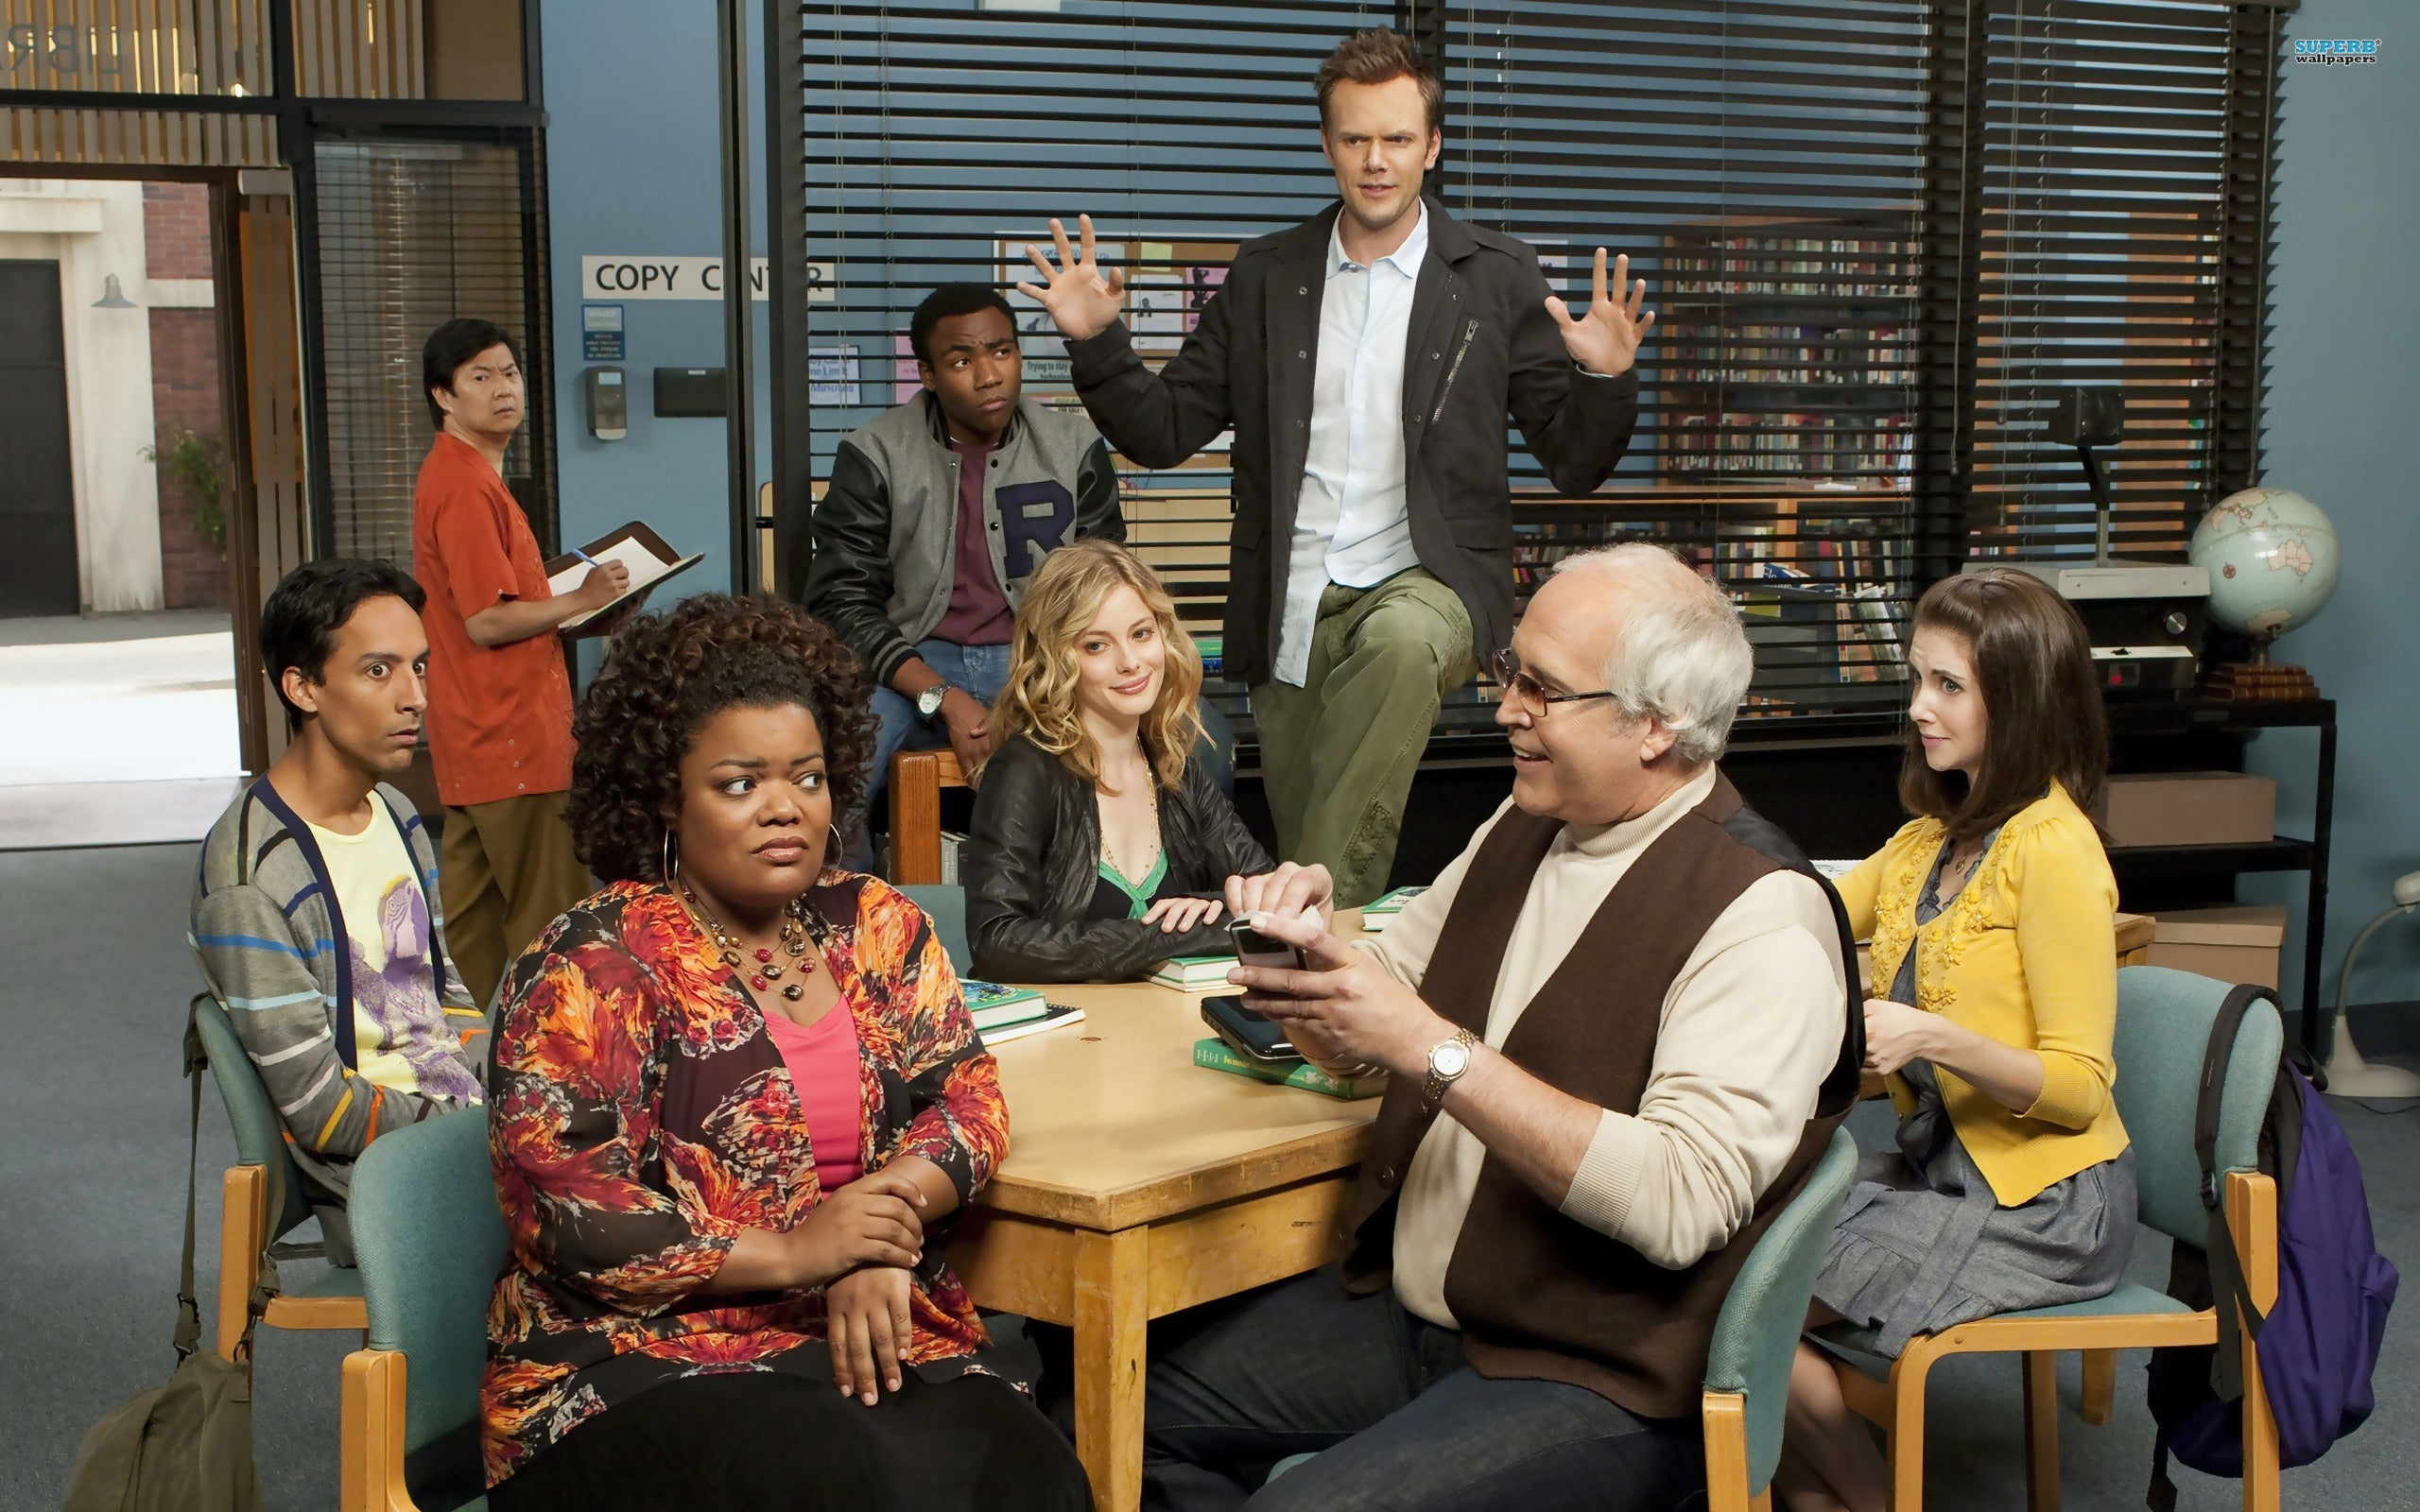 Resurrecting Community Wasn't Enough to Keep Yahoo's TV Dreams Alive